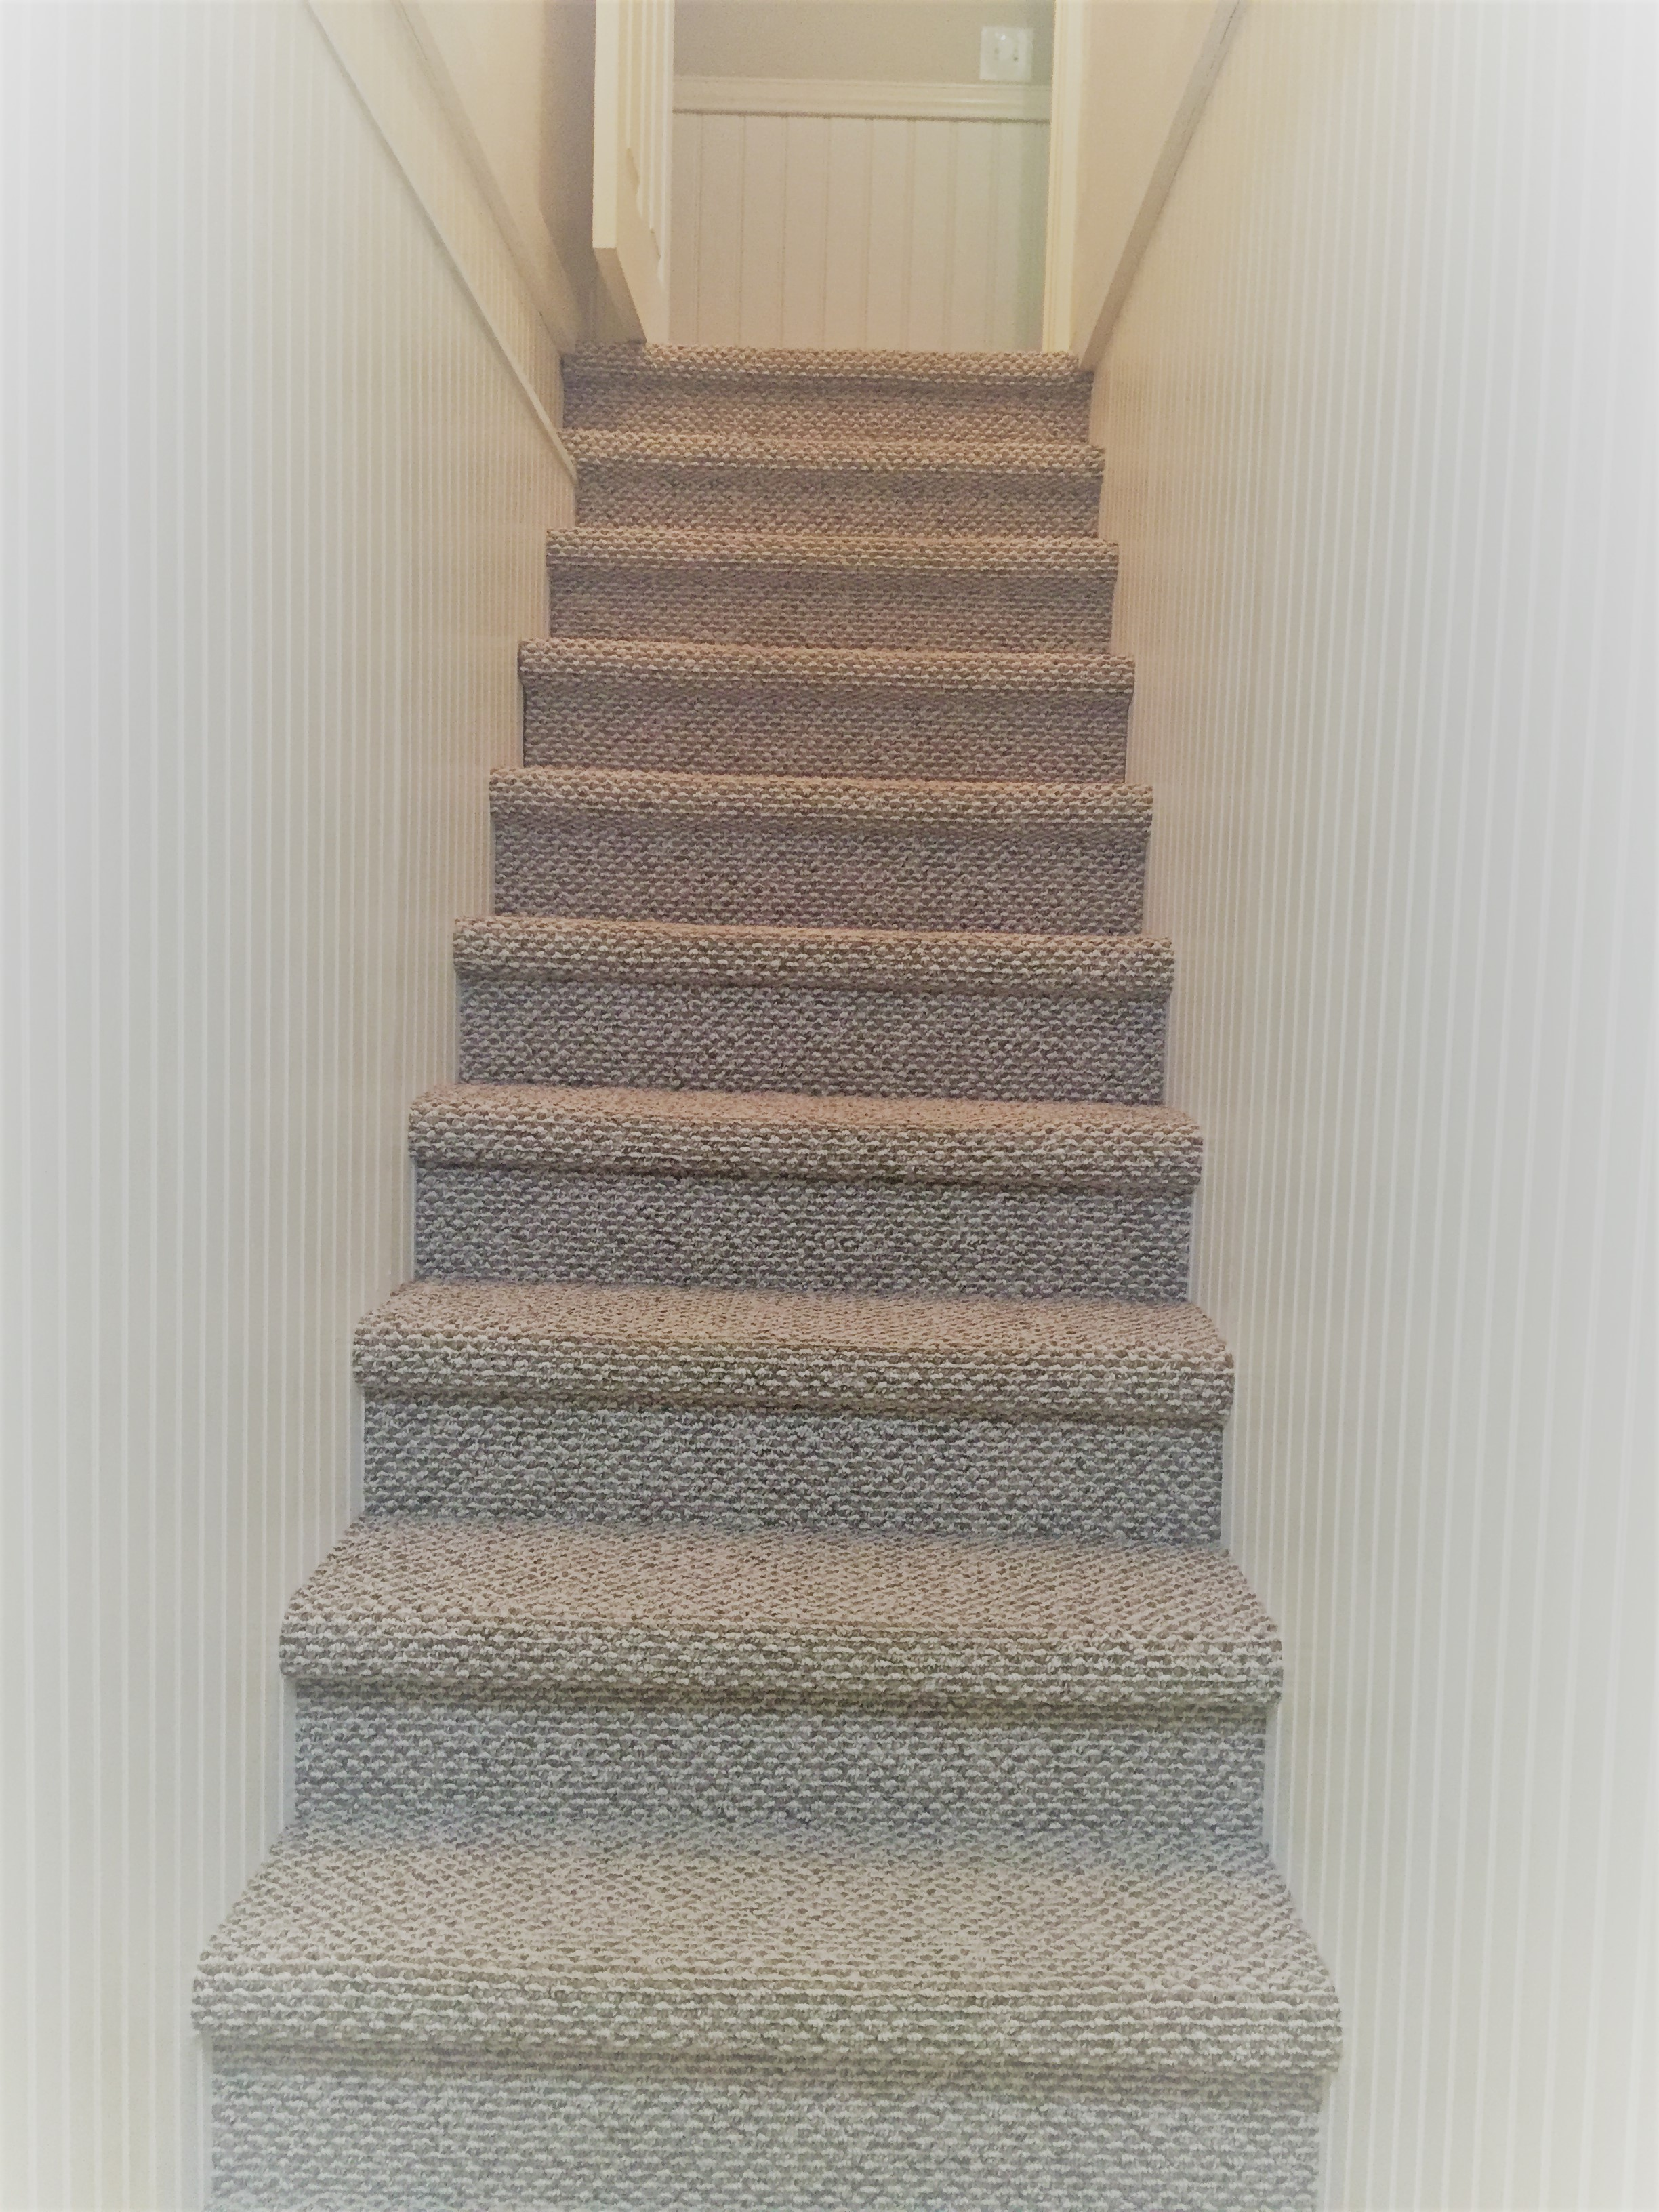 Stairs to bottom floor